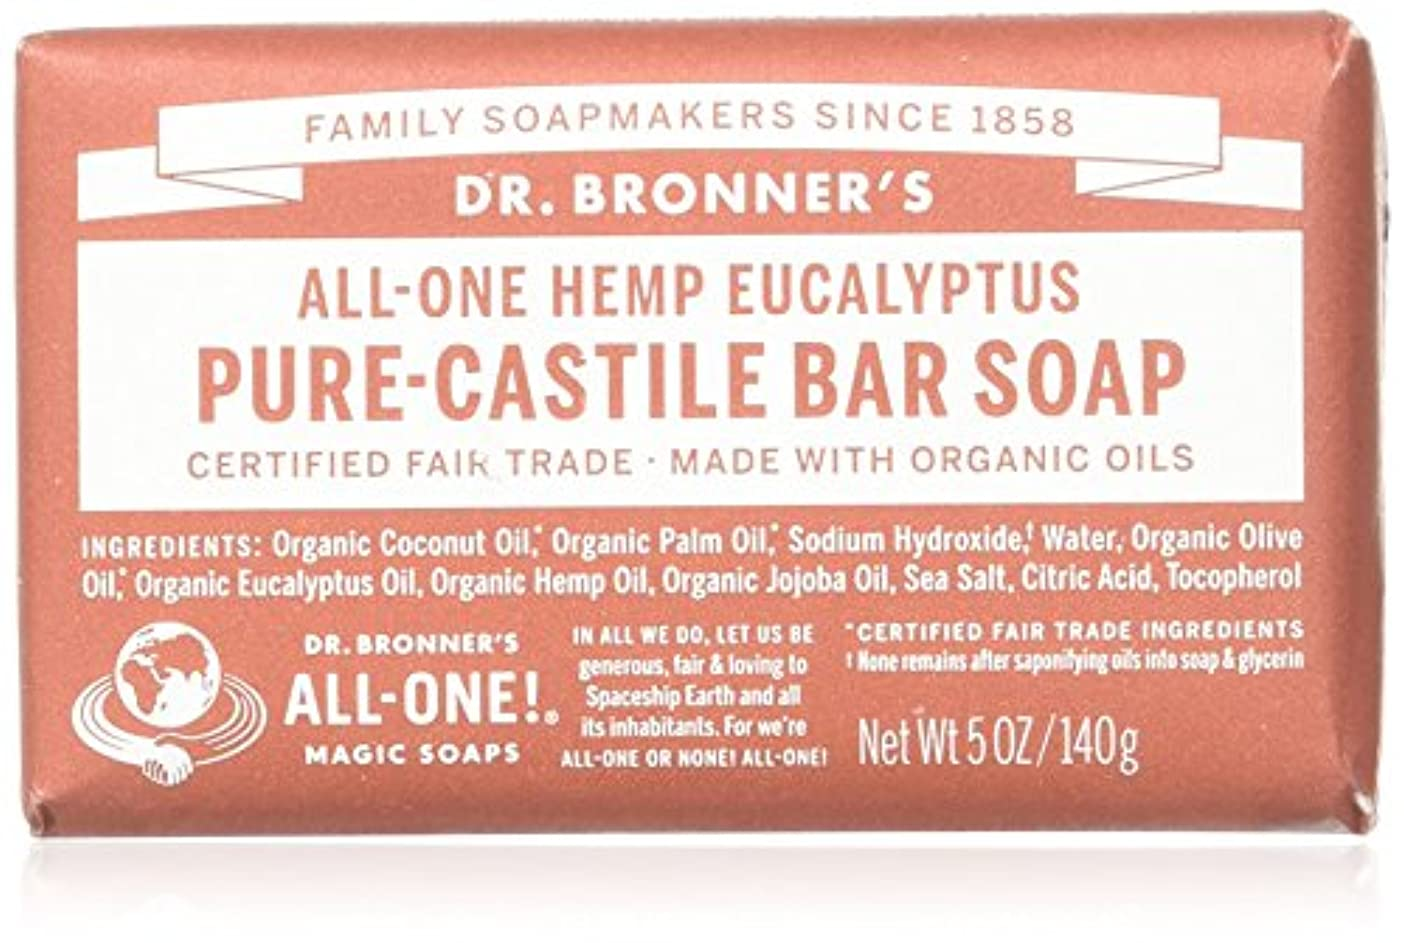 閃光旋律的提供されたDr. Bronner's Eucalyptus Bar Soap Made with Organic Ingredients 141 g by Dr. Bronner's [並行輸入品]